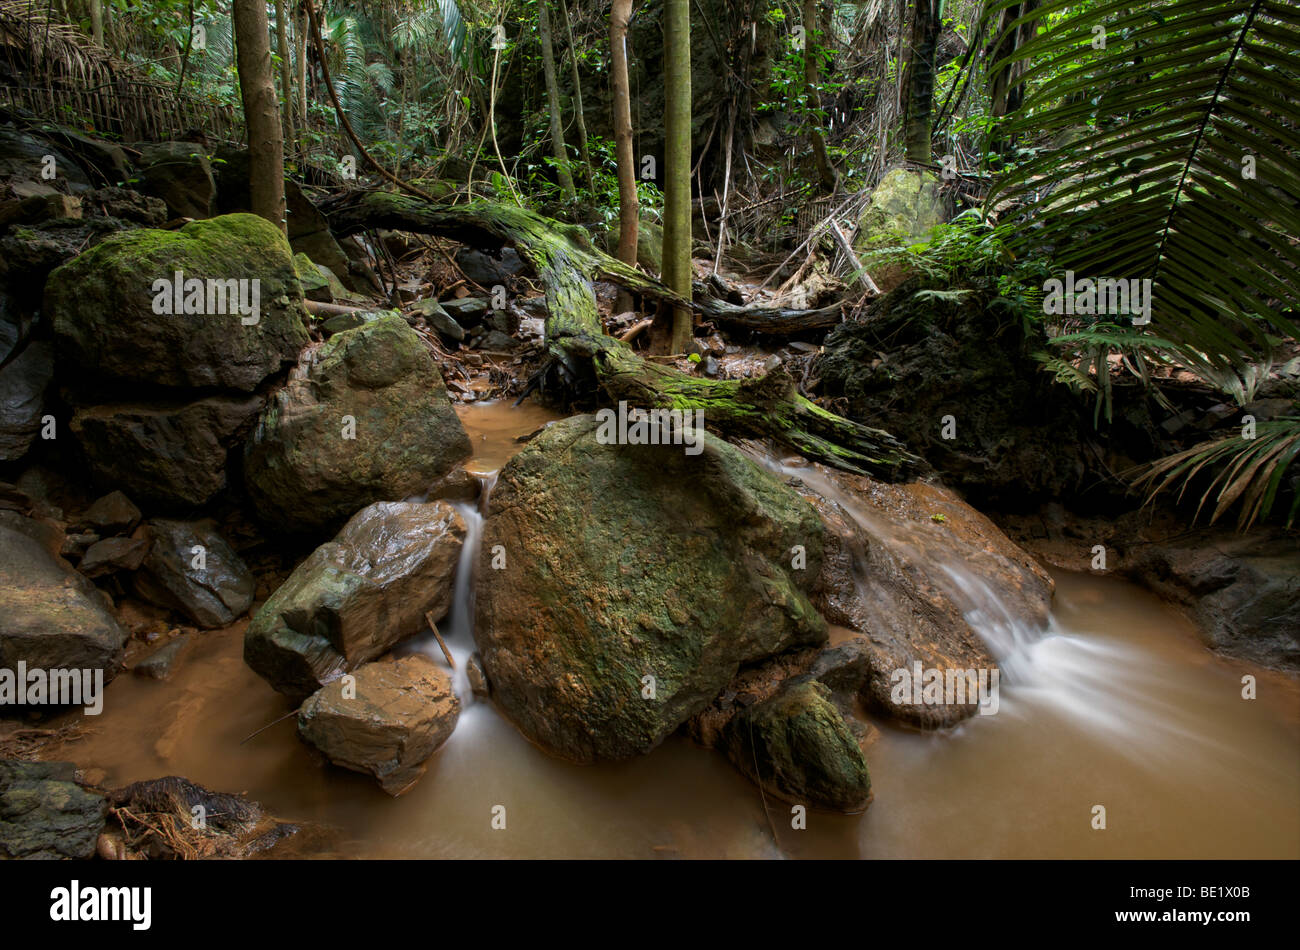 Jungle streams and tributaries of the Sai Boe Waterfall (also known as Cyber Waterfall)  in the Huai Kha Khaeng - Stock Image